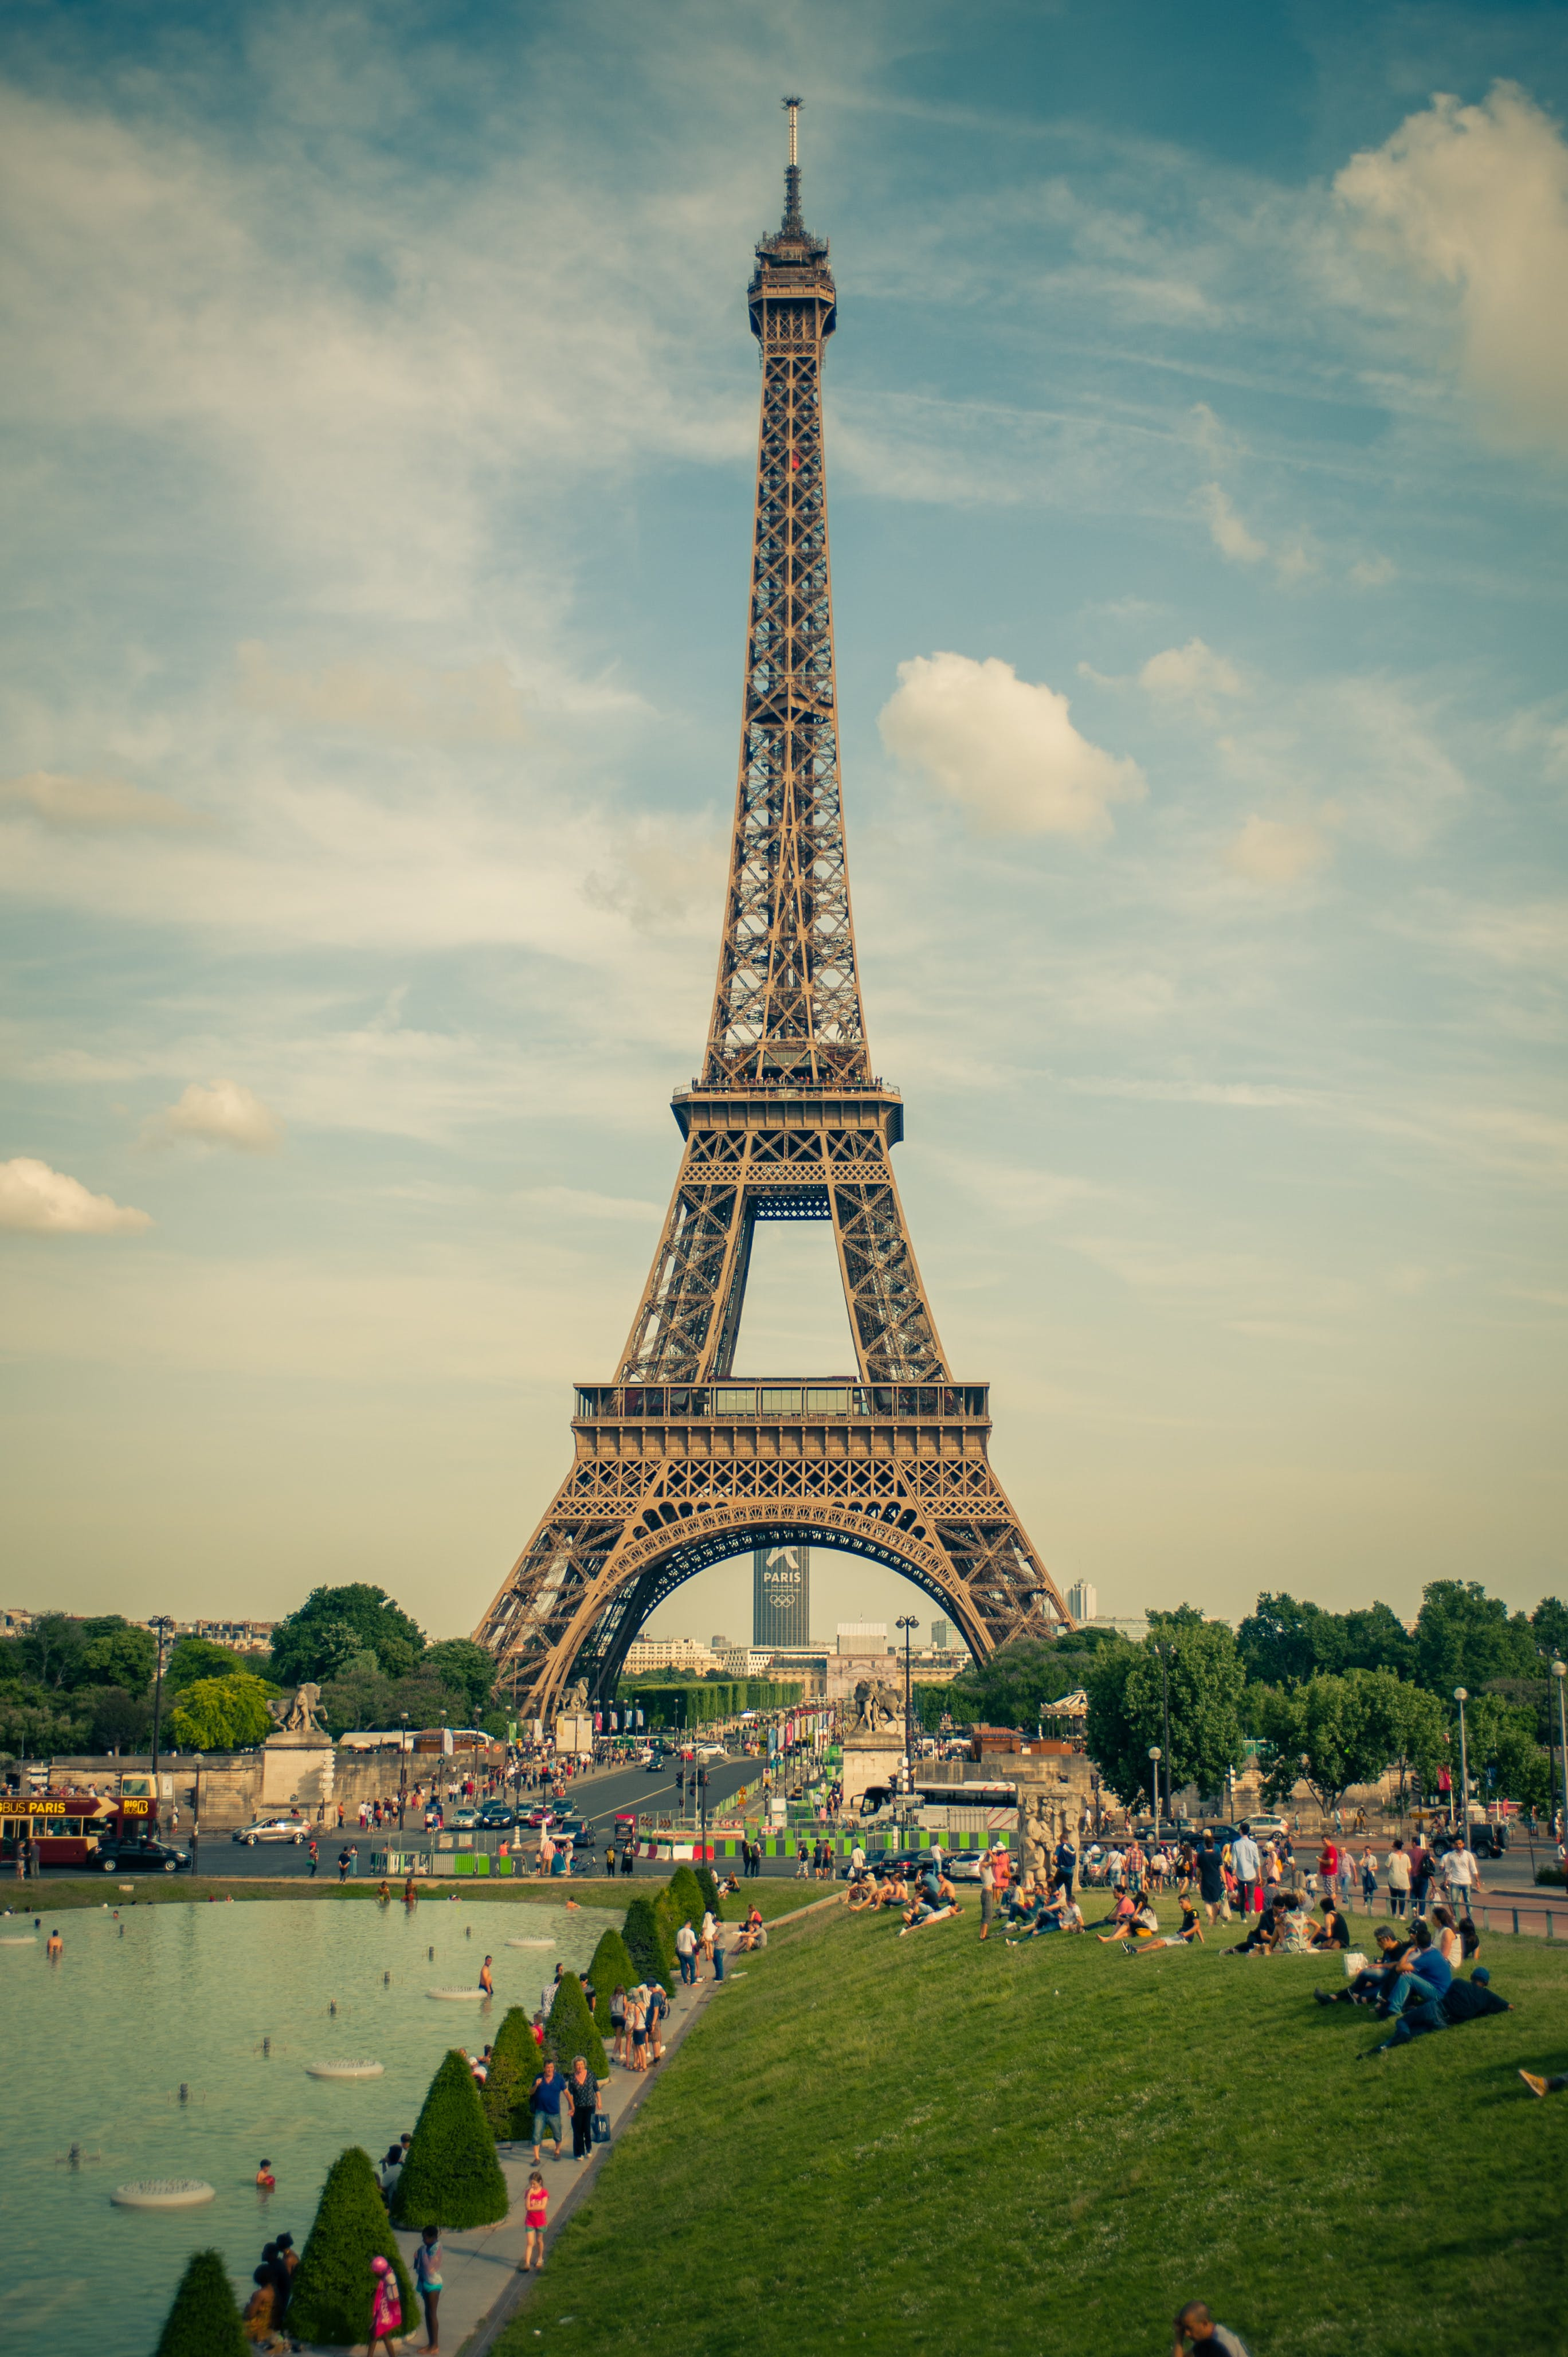 Free stock photo of eiffel tower, france, paris, park